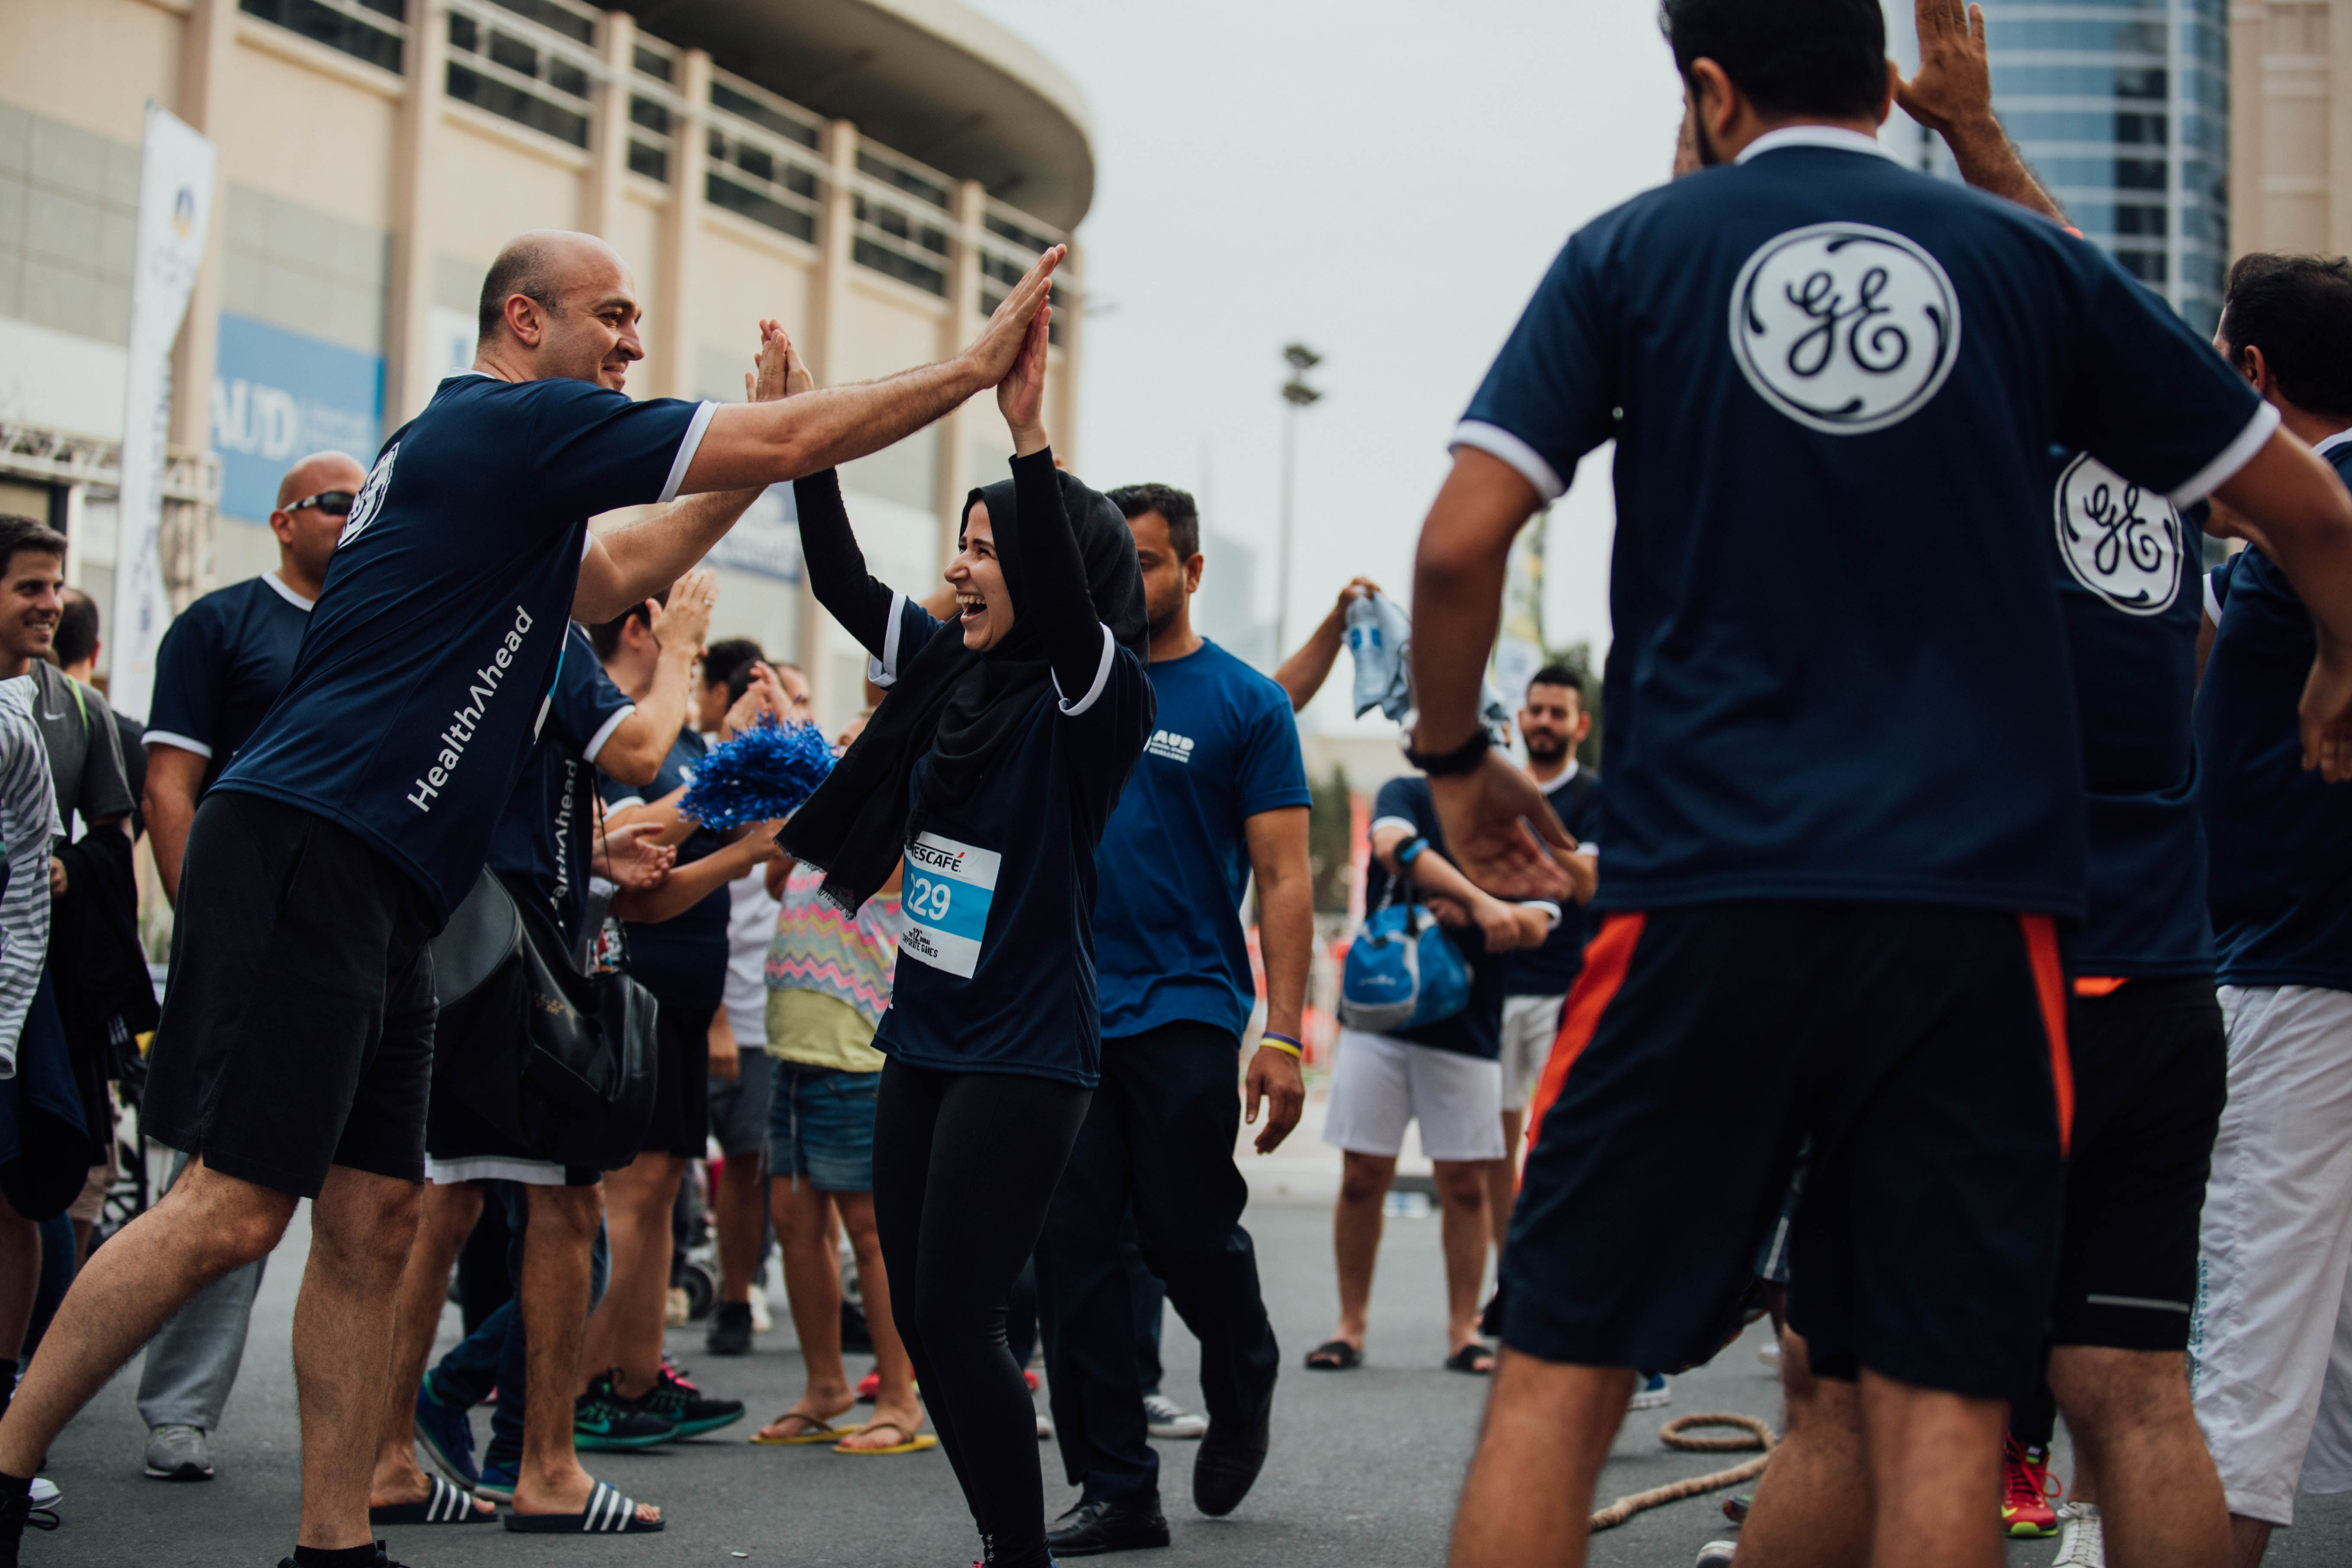 Dubai Corporate Games 2017 High 5 Events